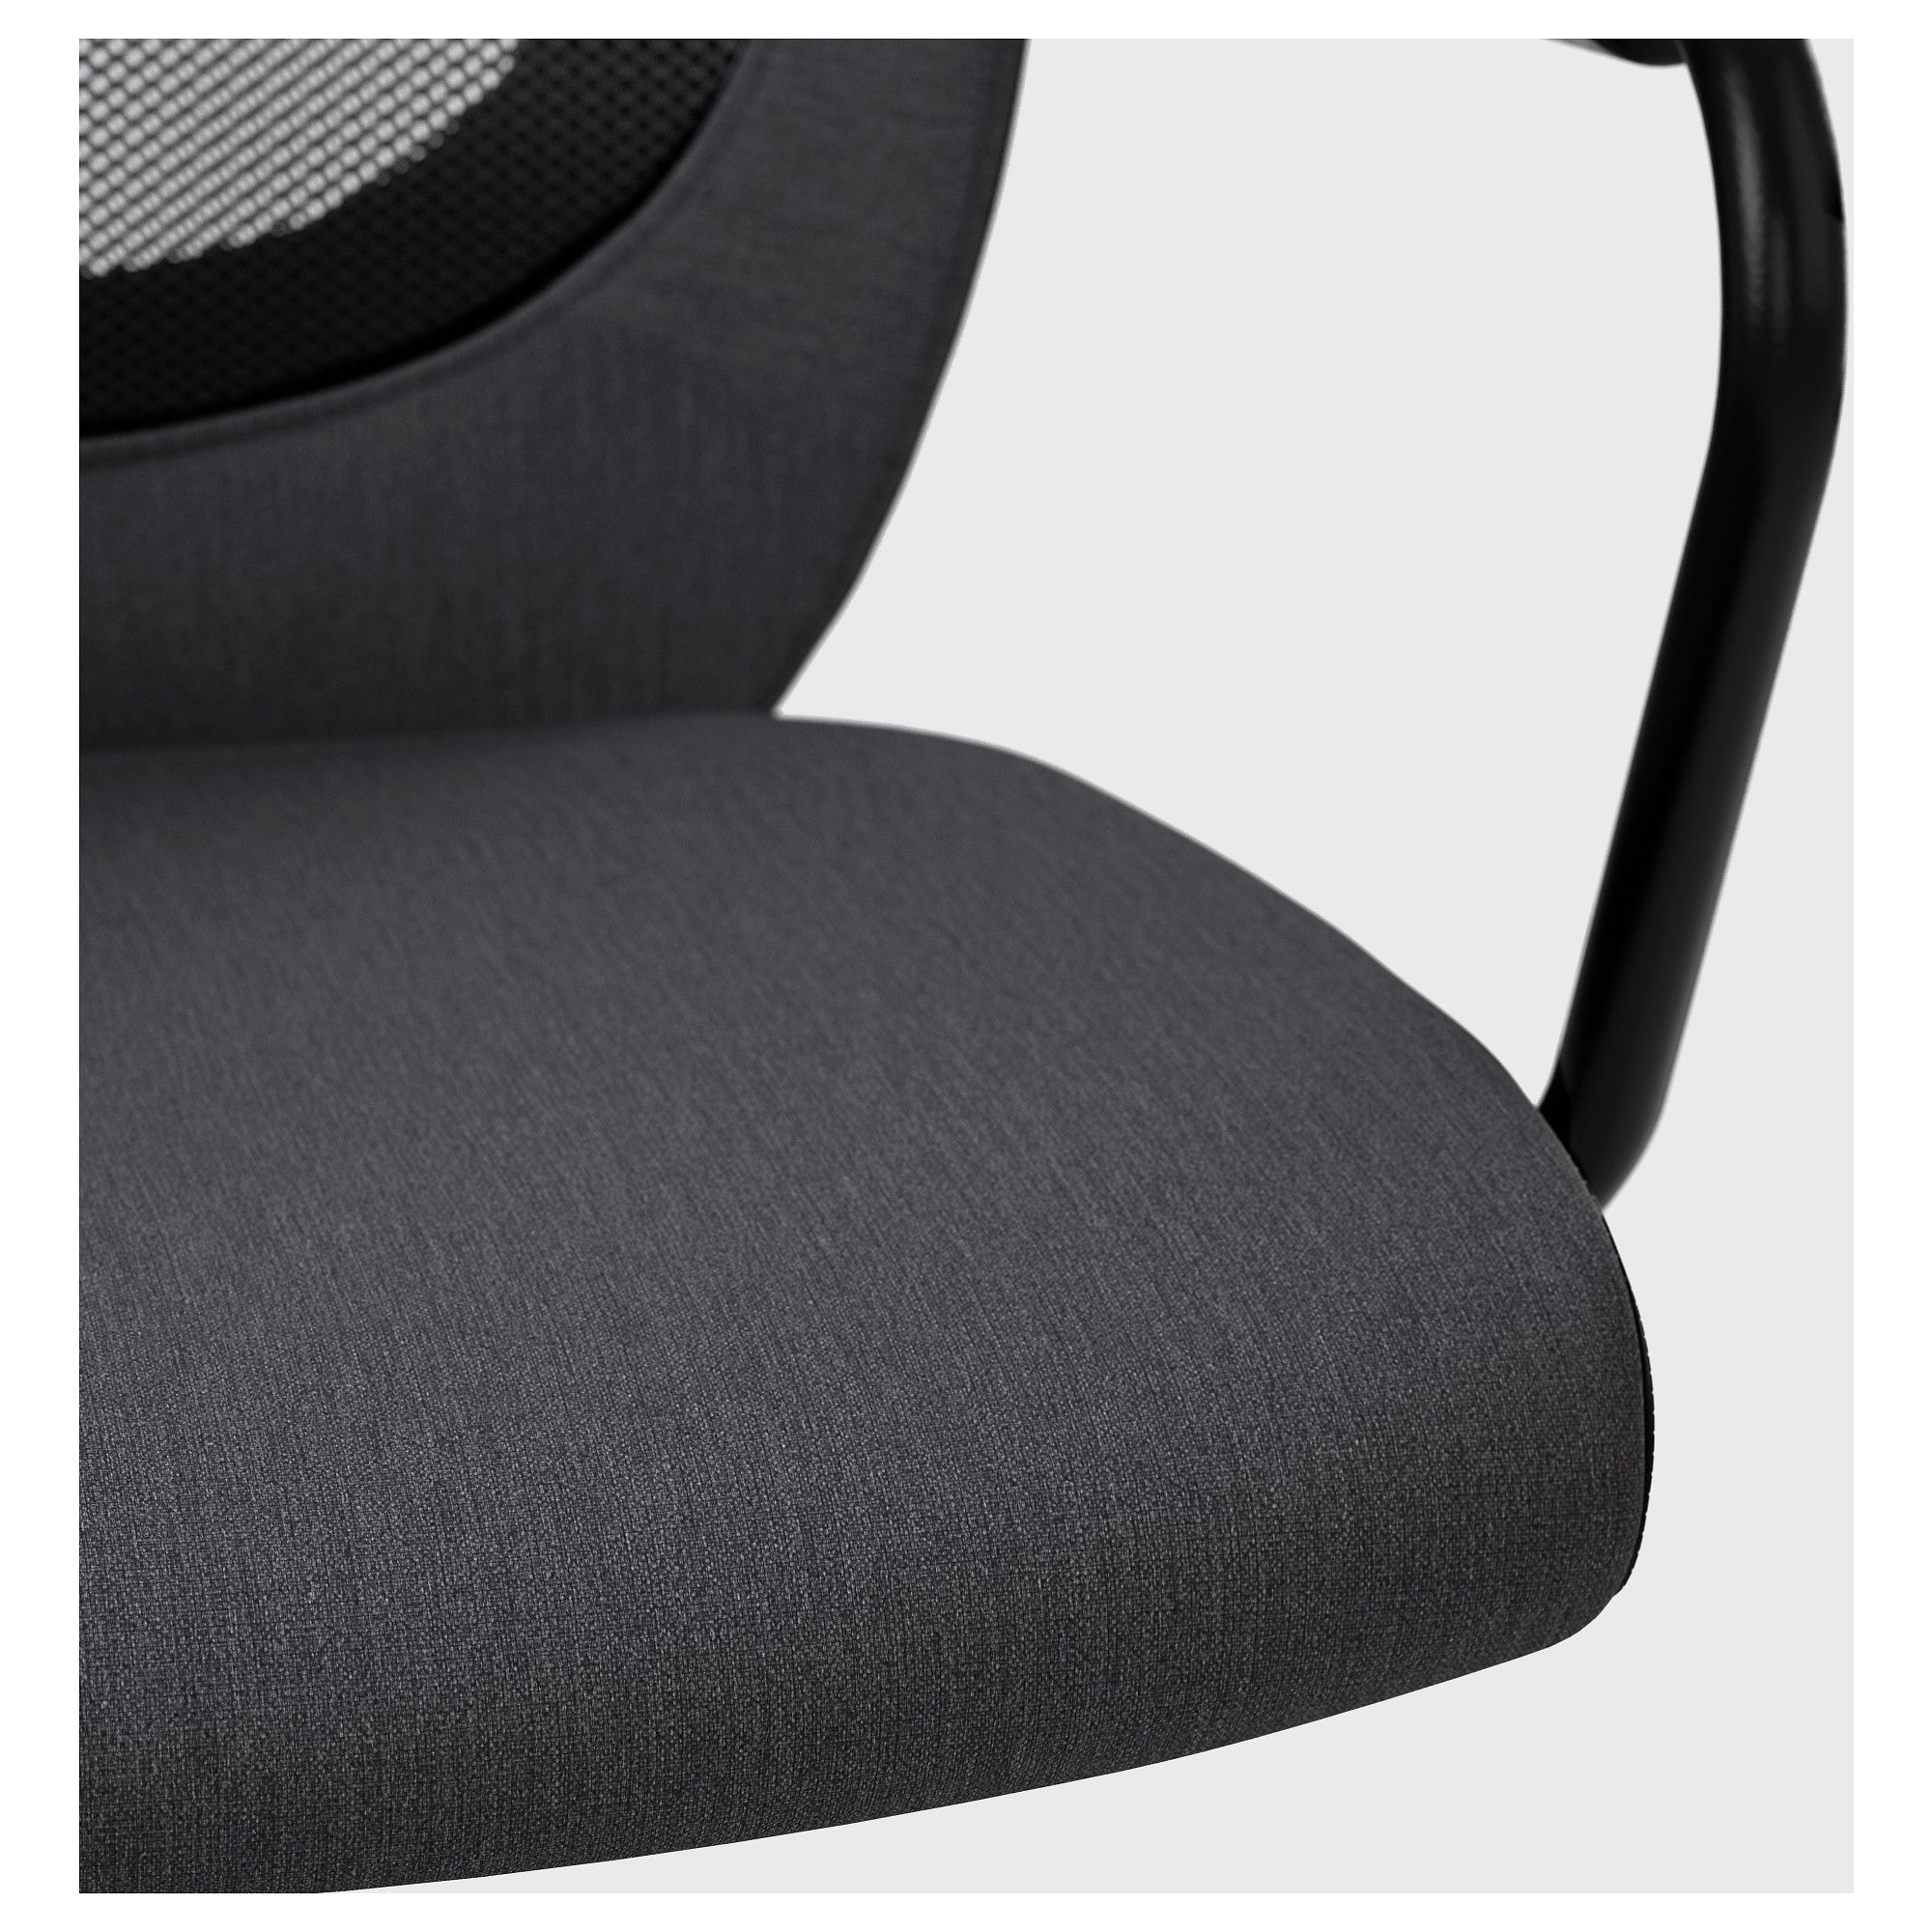 IKEA FLINTAN NOMINELL Office chair with armrests gray